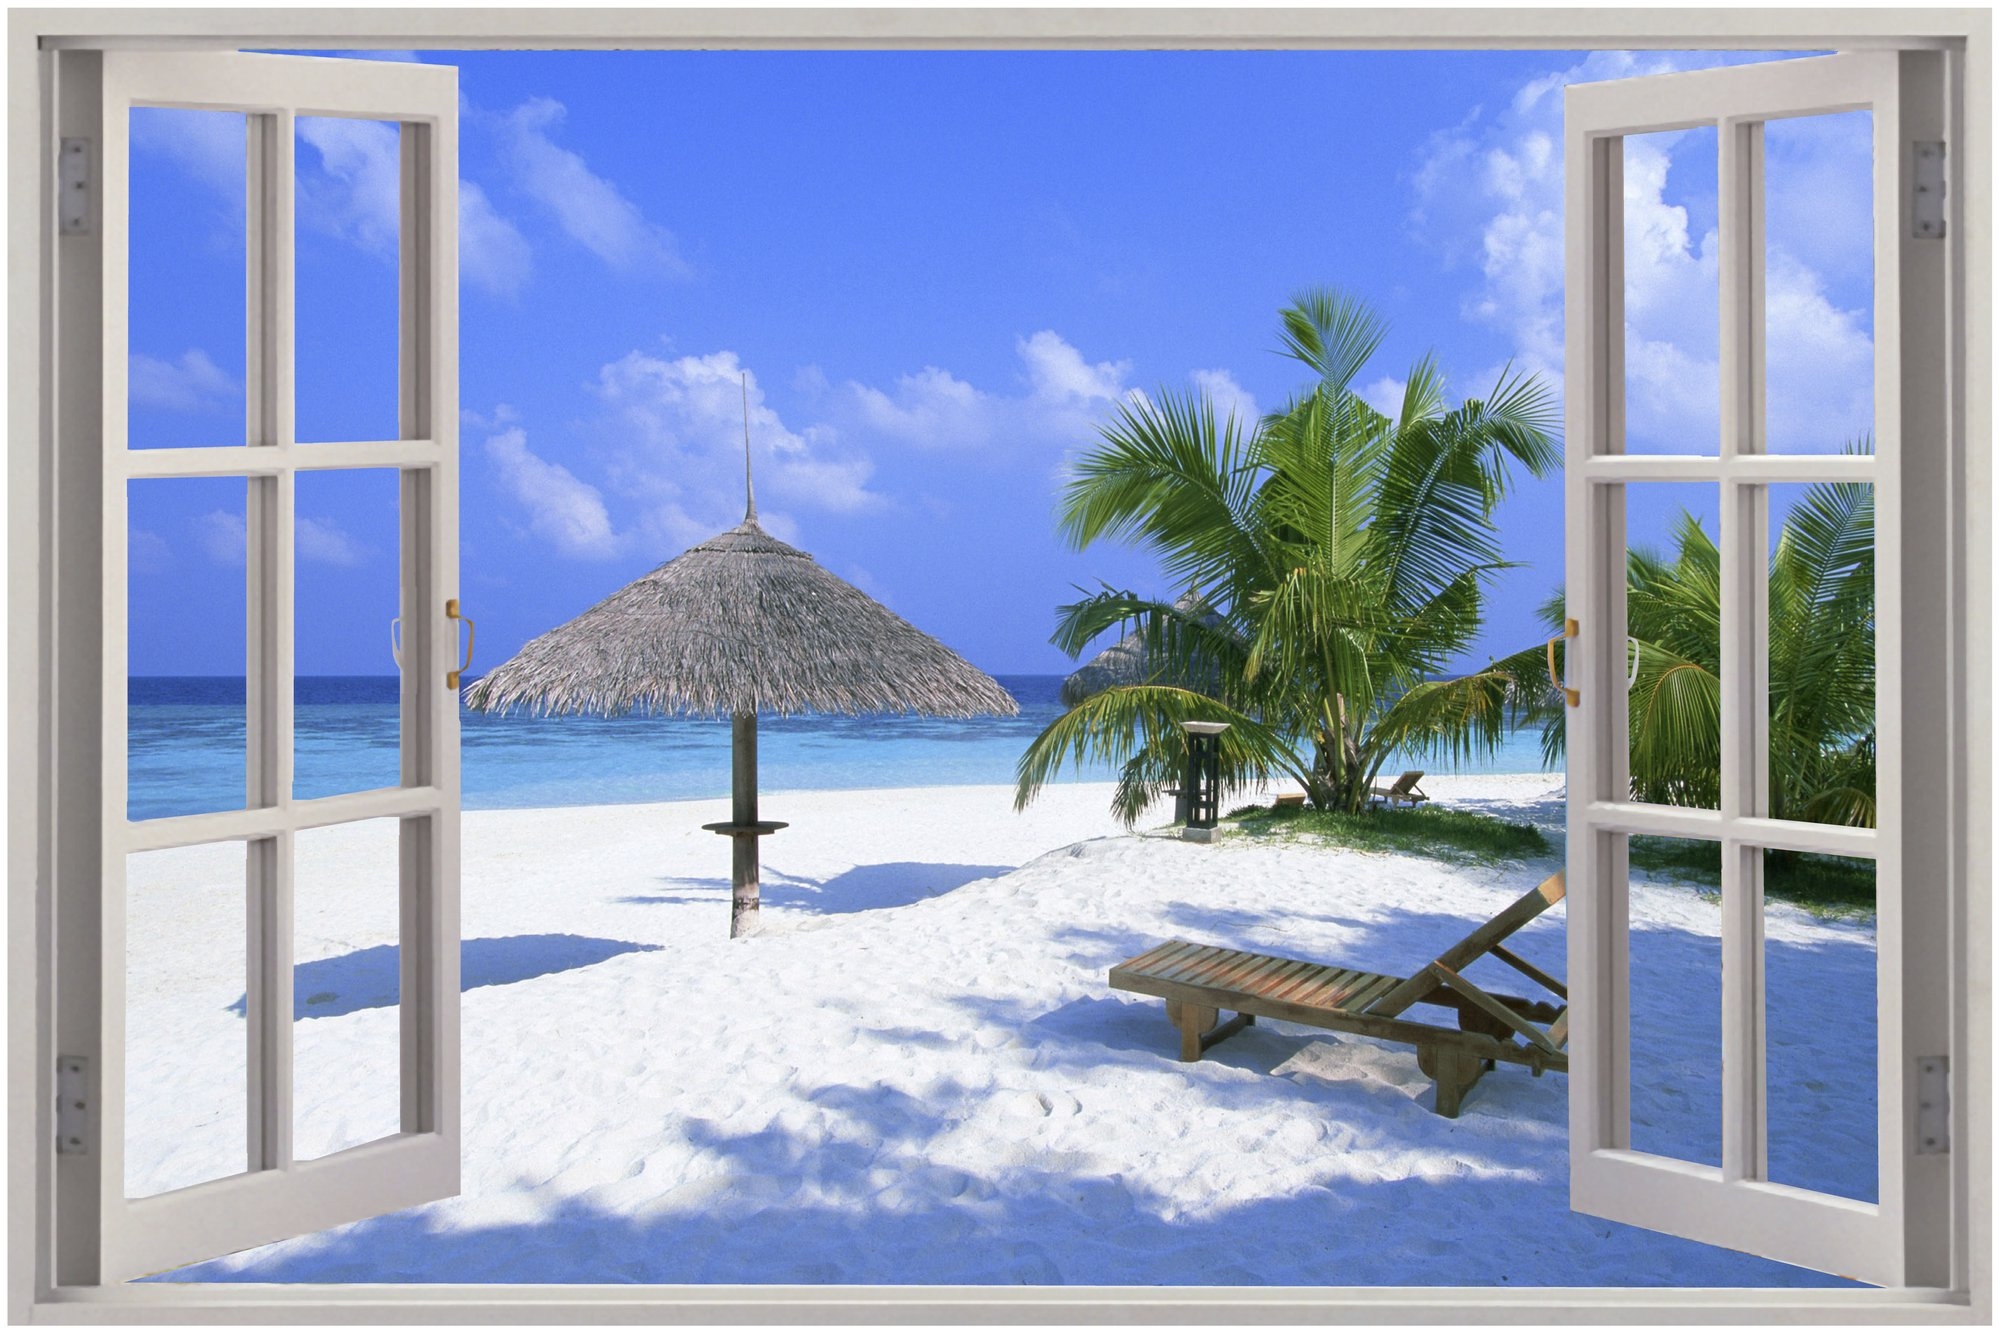 Beach window wallpaper wallpapersafari for Door mural stickers